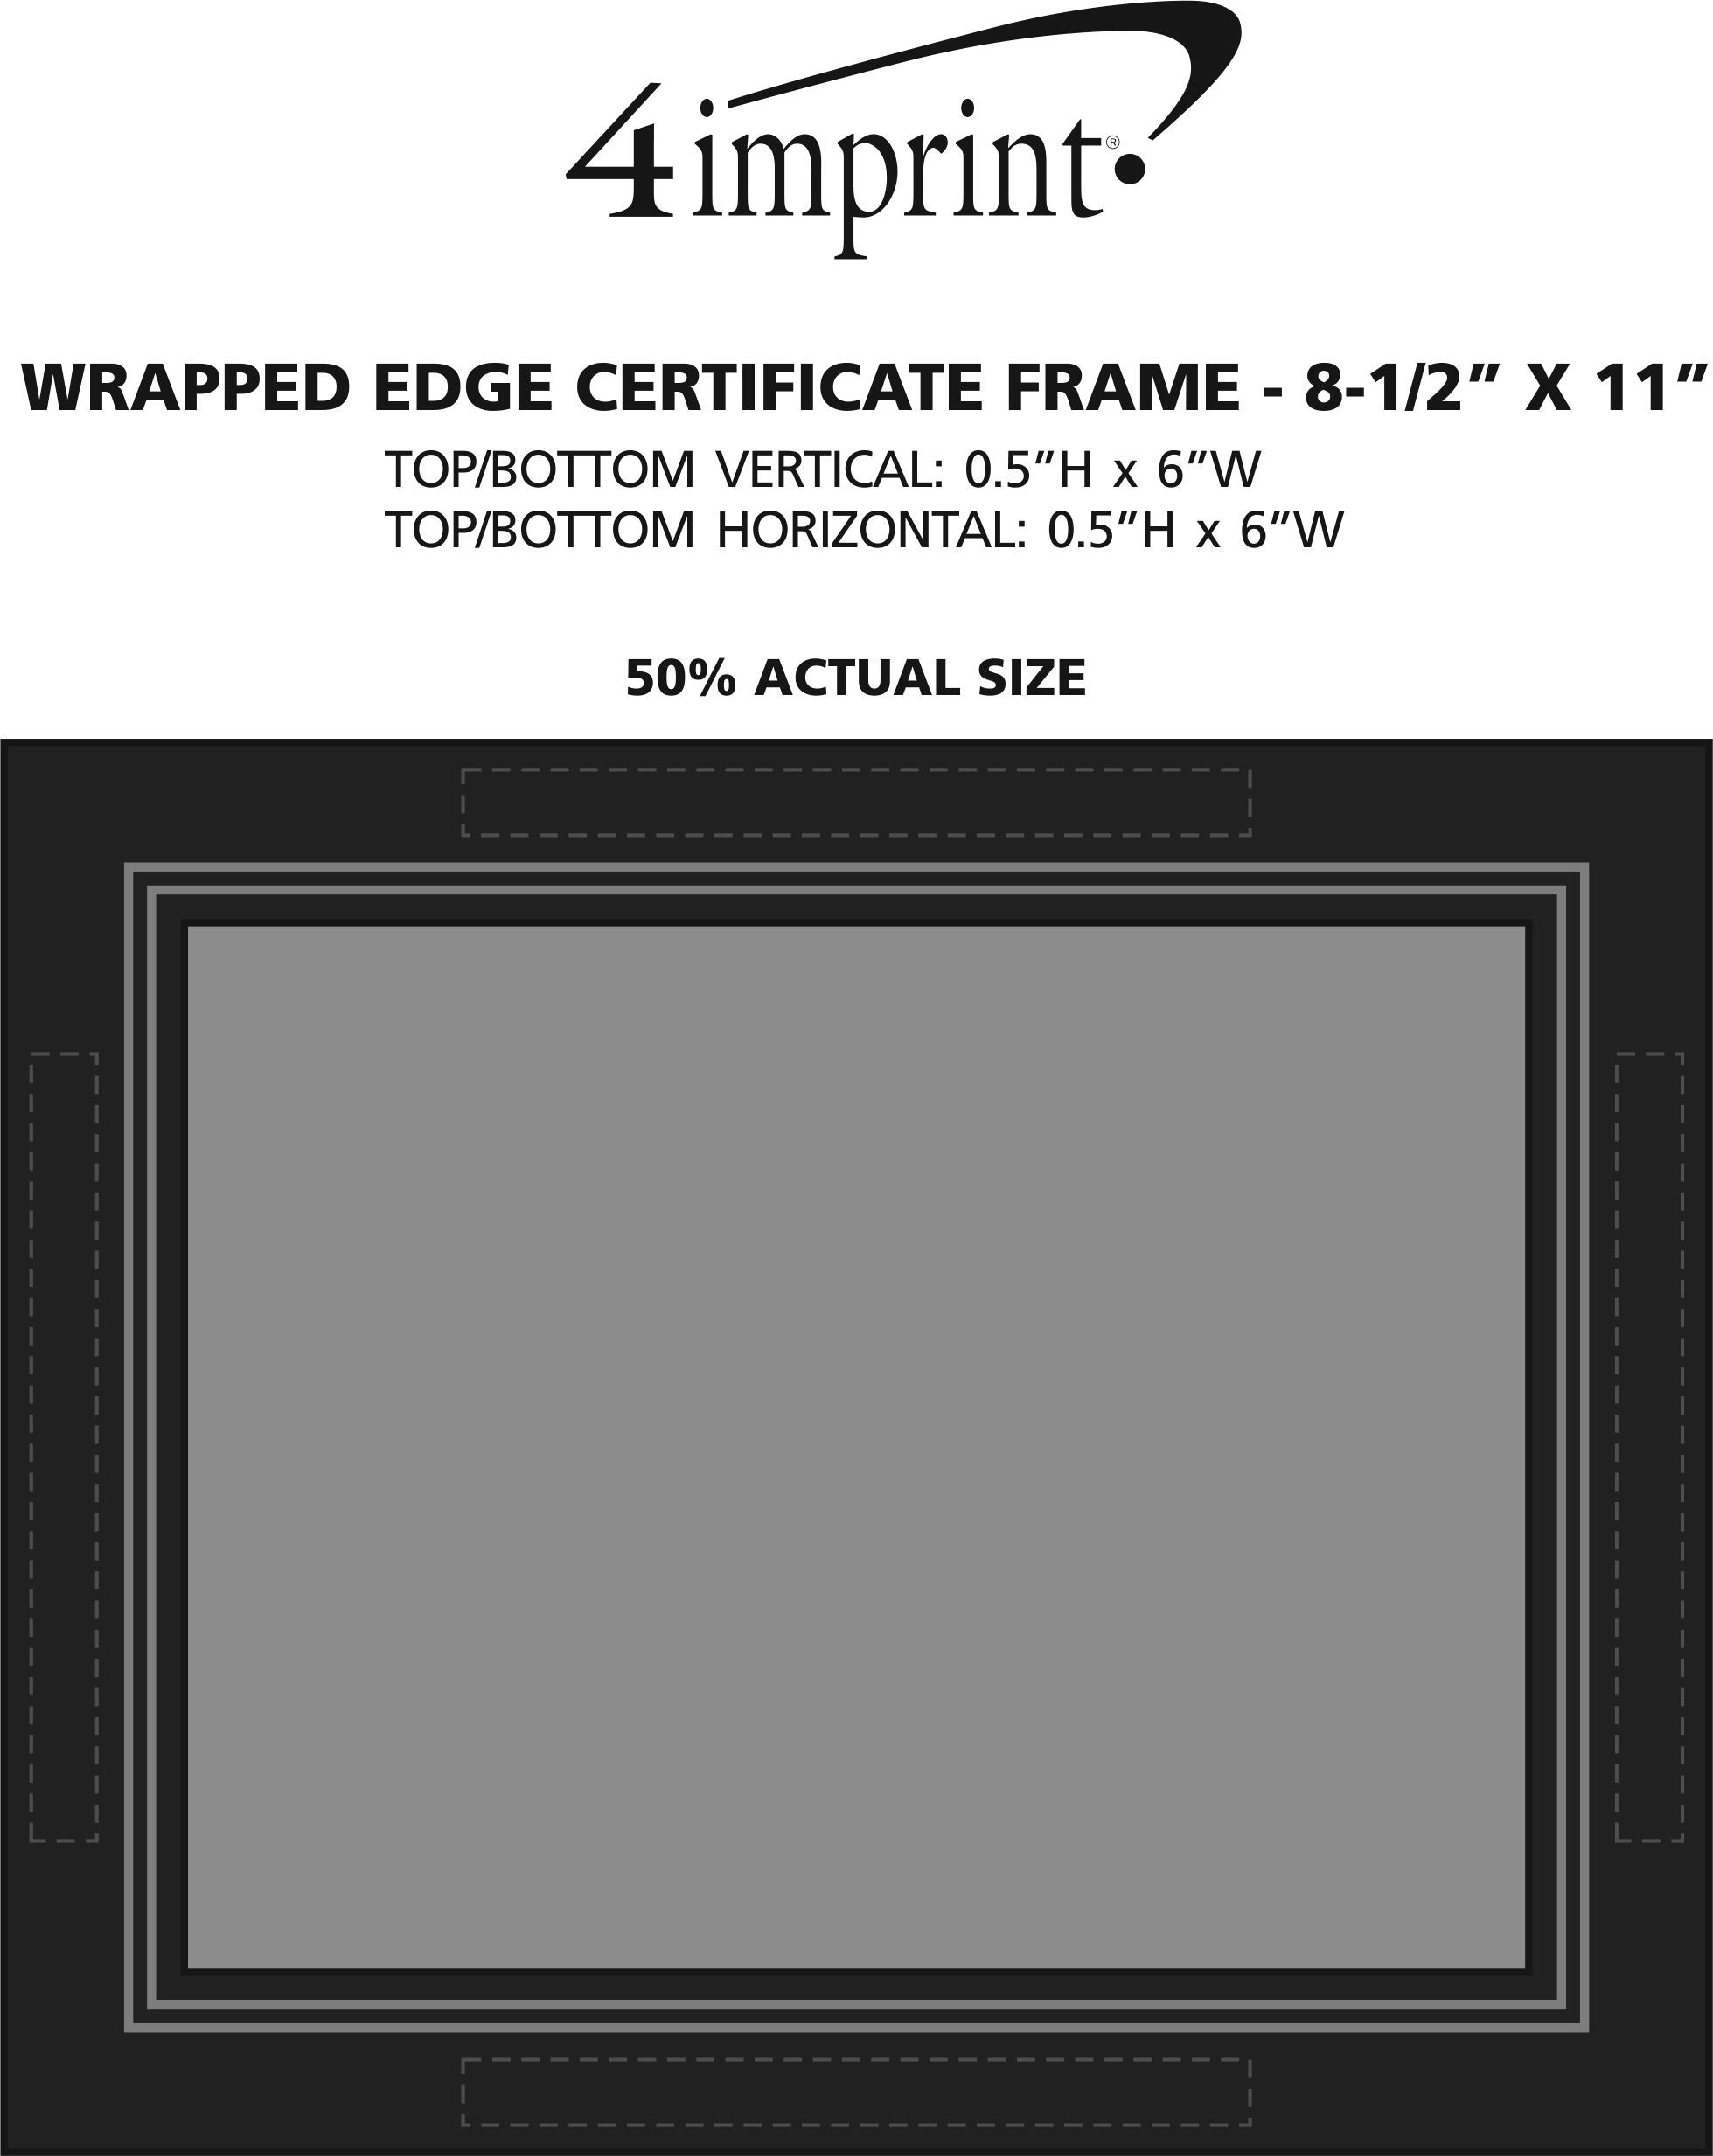 "Imprint Area of Wrapped Edge Certificate Frame - 8-1/2"" X 11"""